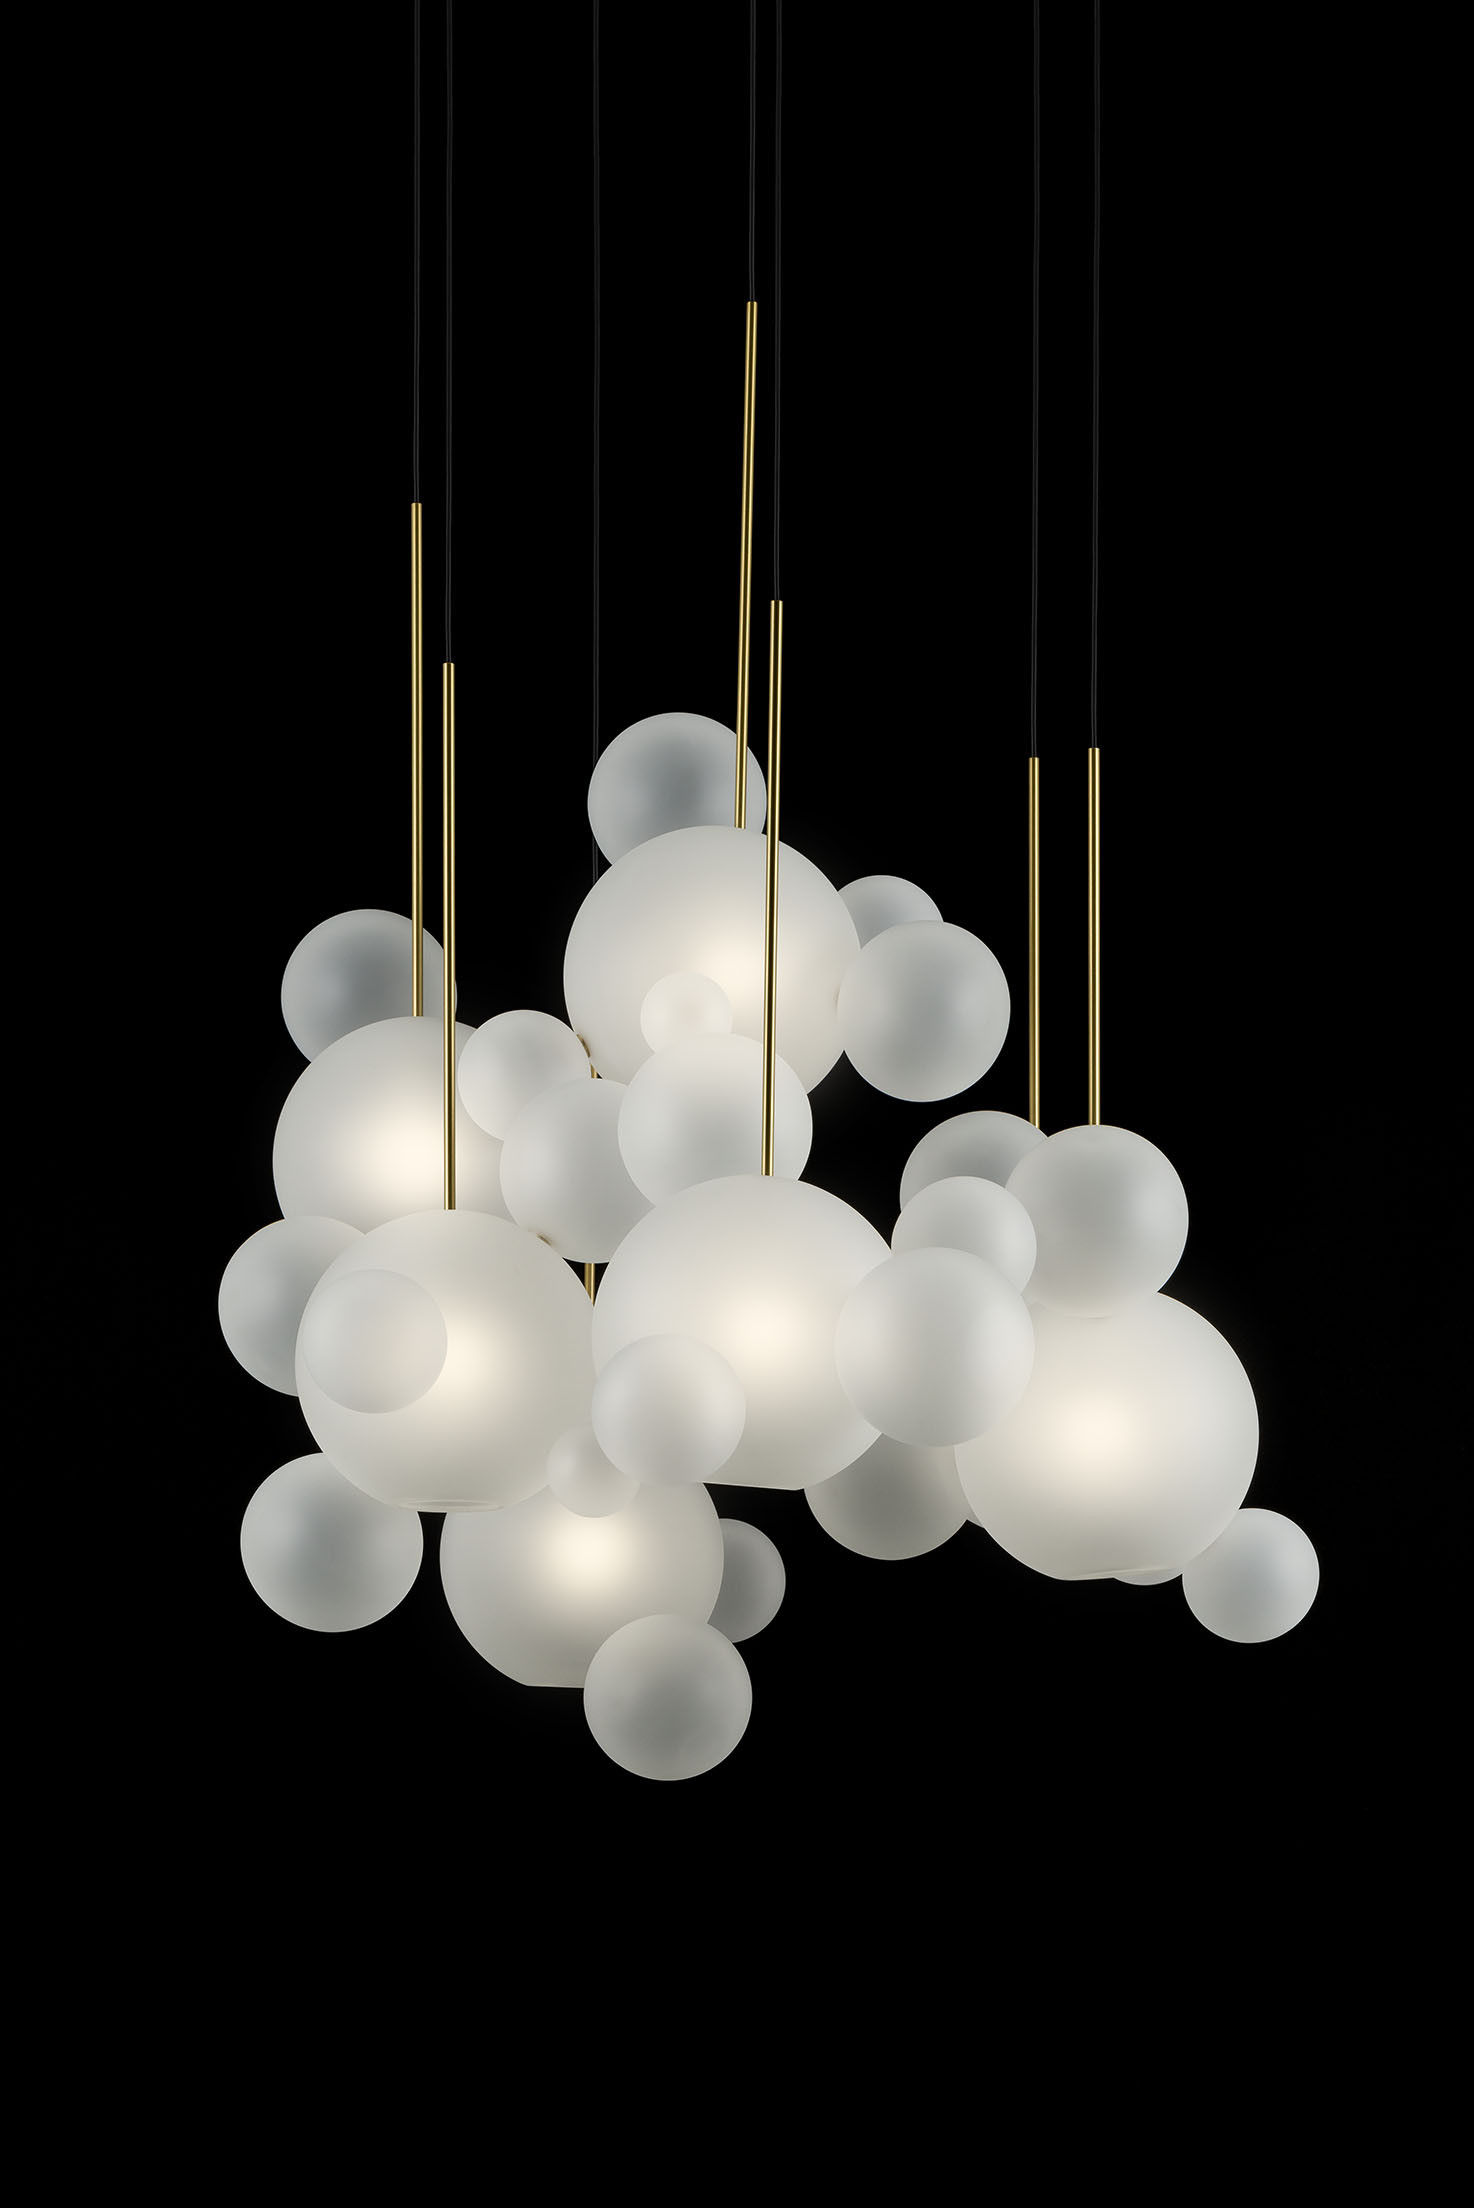 Giopato_Coombes_Bolle_Frosted_Circular_Chandelier_34_Bubbles_Ph_FedericoVilla.jpg